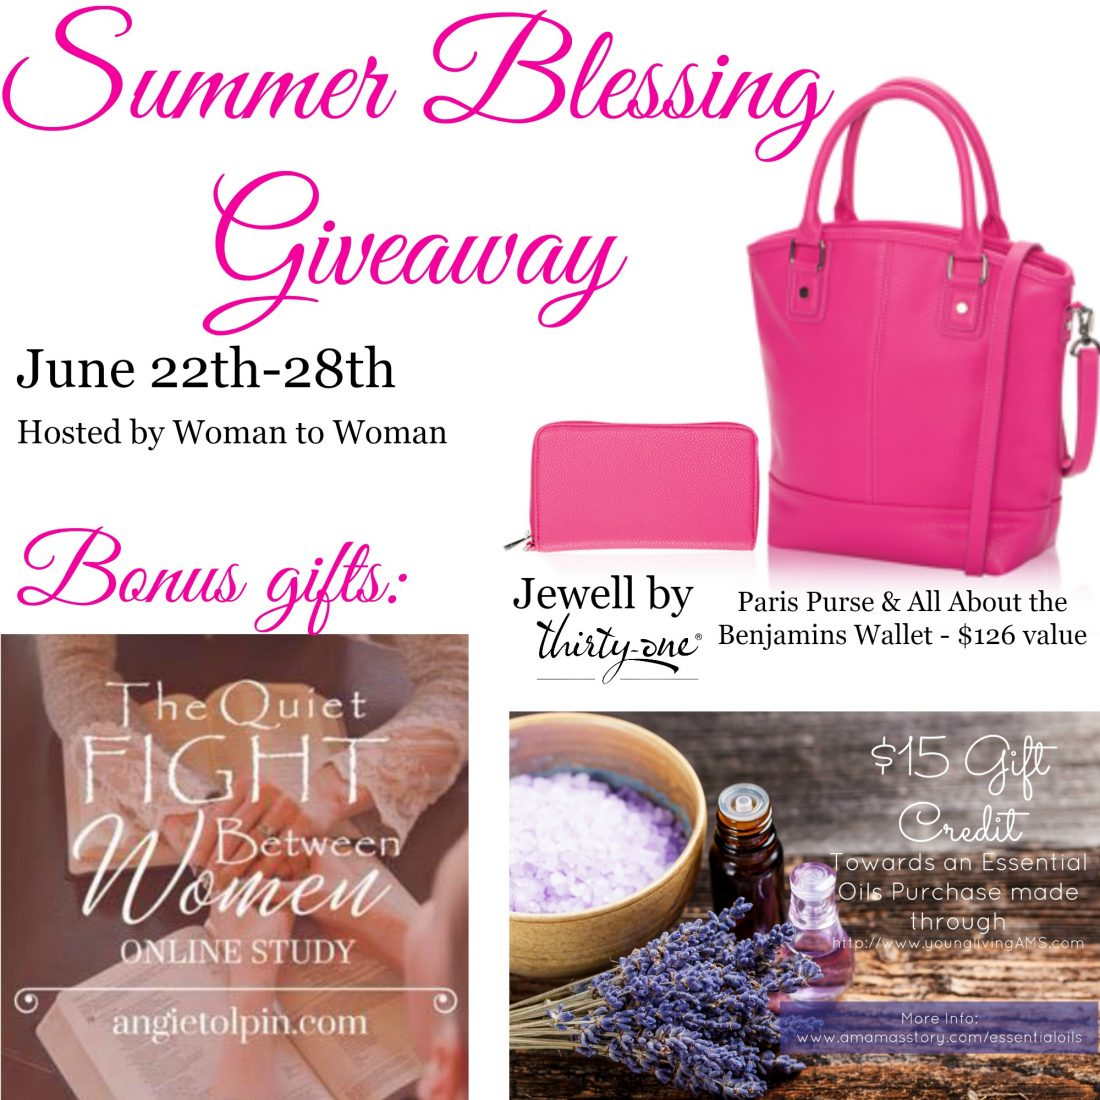 Summer Blessing Giveaway: 31 Gifts, Essential Oils, Bible Study!